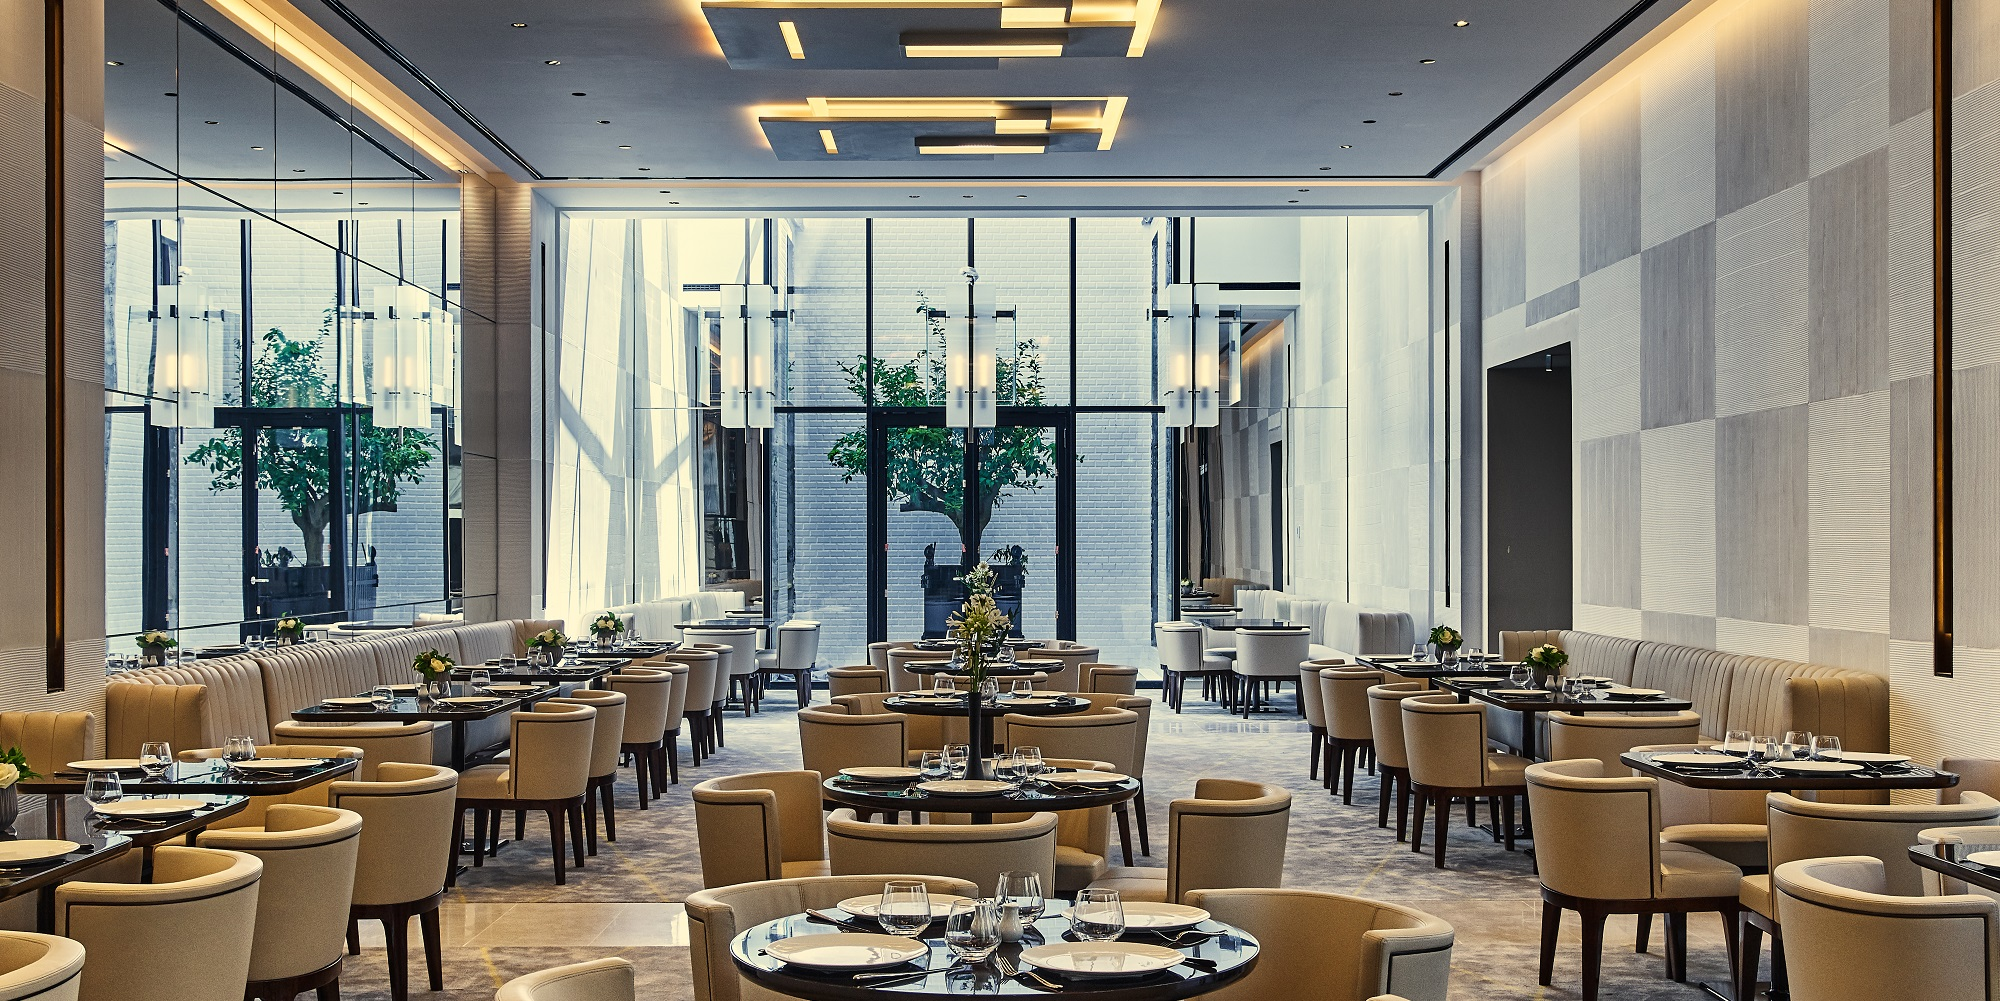 Brunch lutetia 75006 paris 6 me oubruncher - Hotel lutetia renovation ...